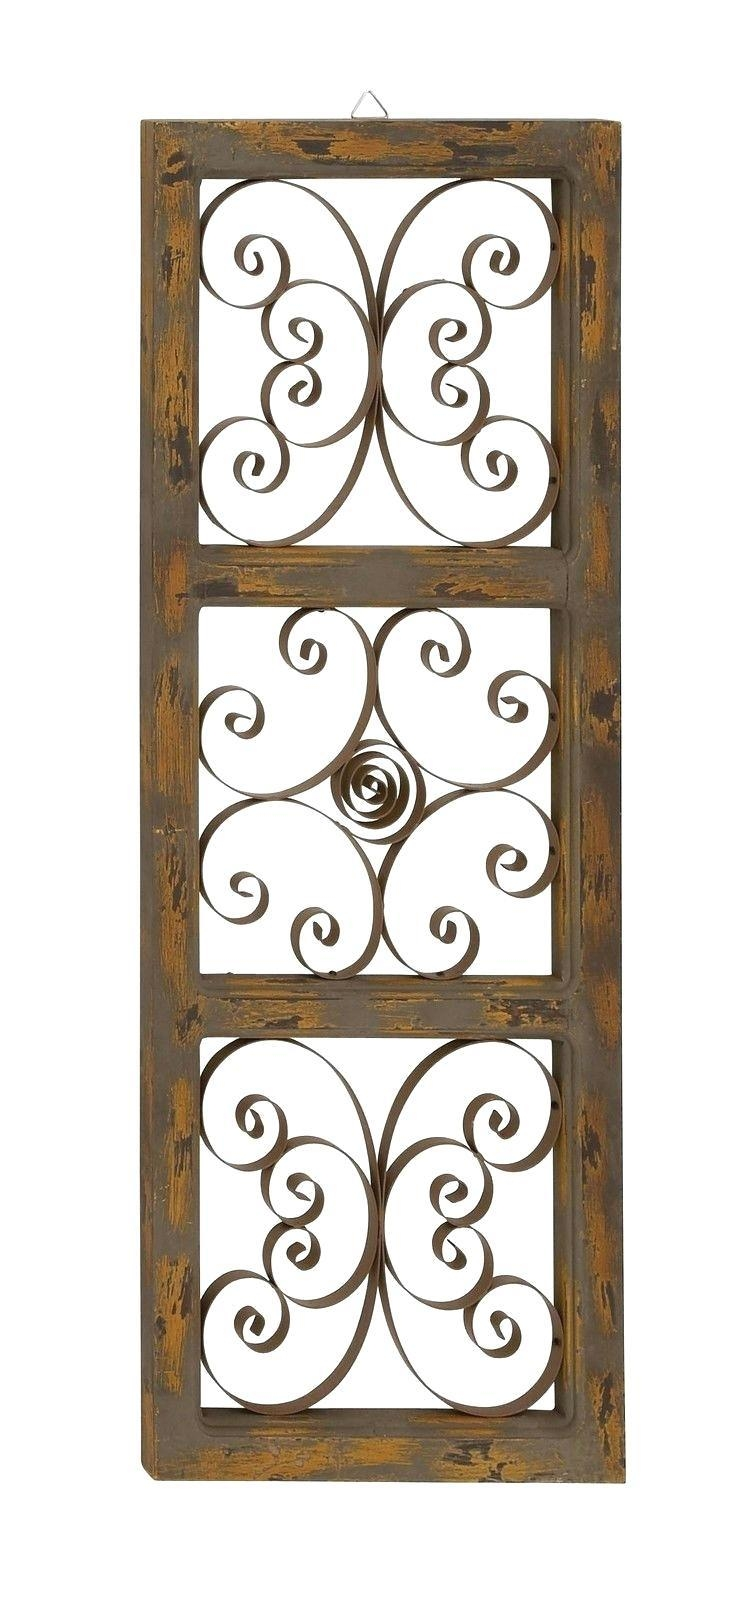 Wall Ideas : Scroll Design Grill Accessories Google Search Metal Intended For Iron Scroll Wall Art (View 11 of 20)